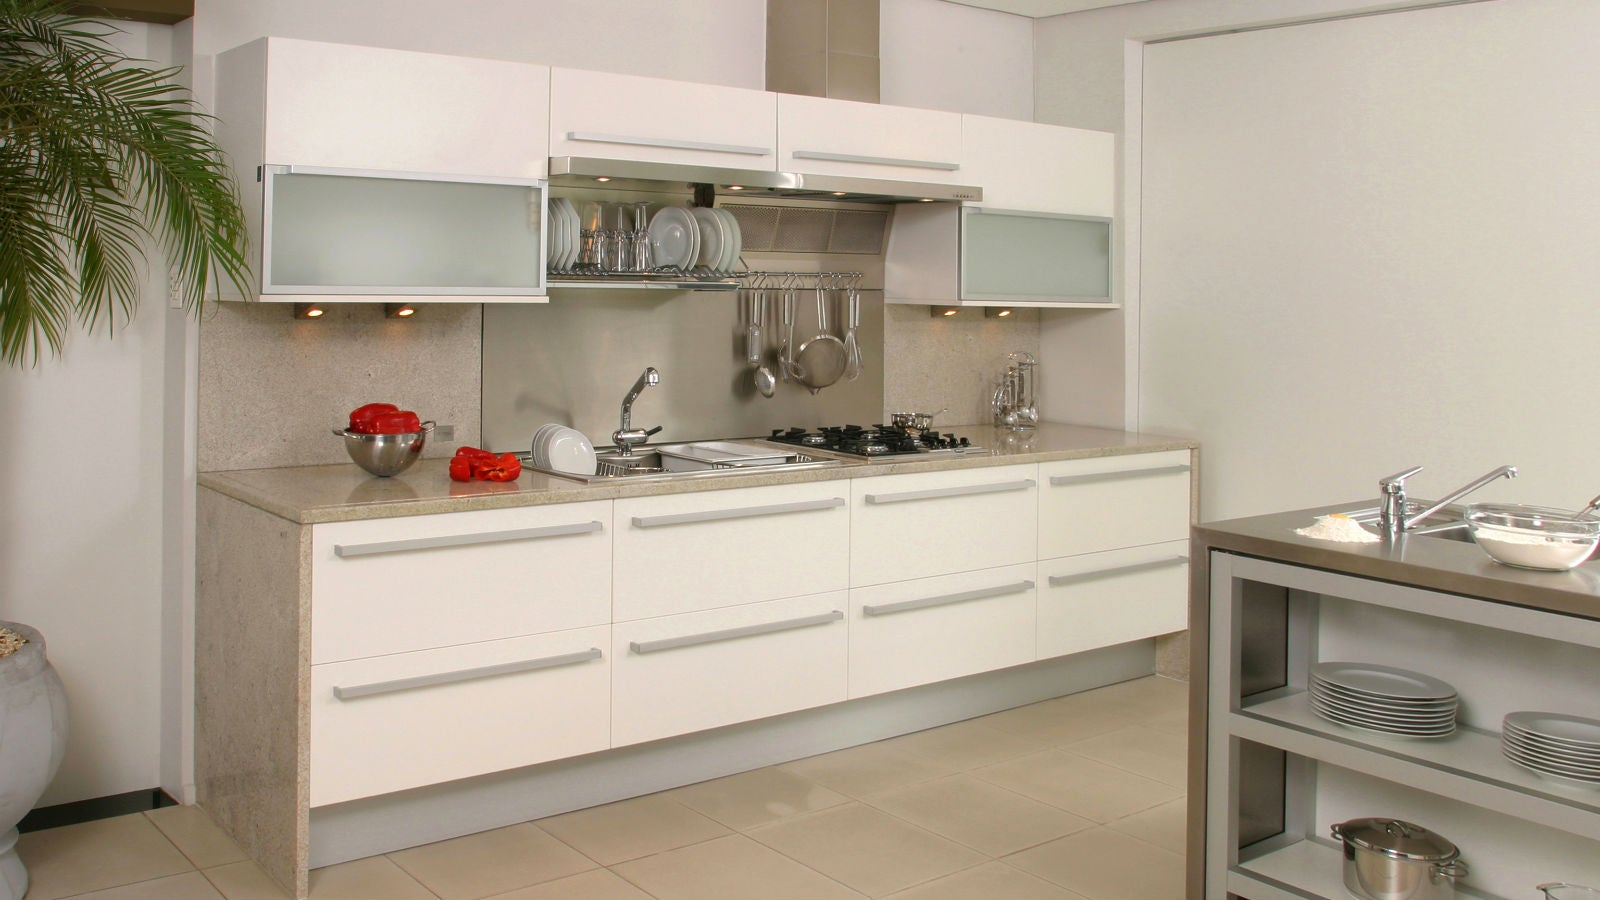 5 Easy Ways To Reorganise Your Kitchen Like A Master Chef